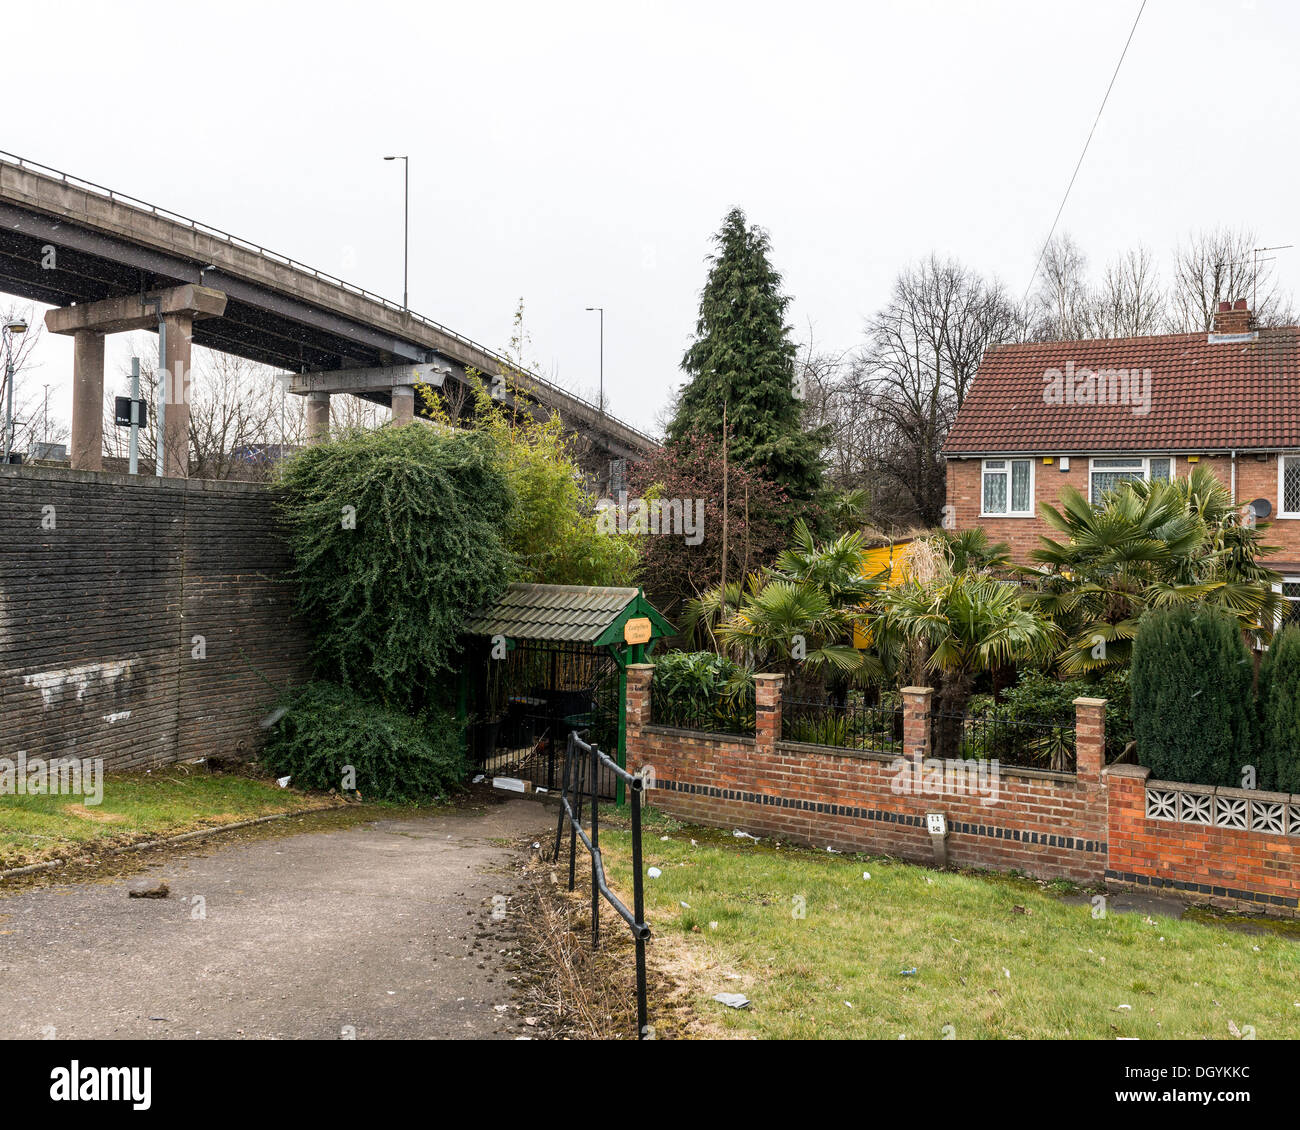 Birmingham United: Spaghetti Junction (Gravelly Hill Interchange), Birmingham